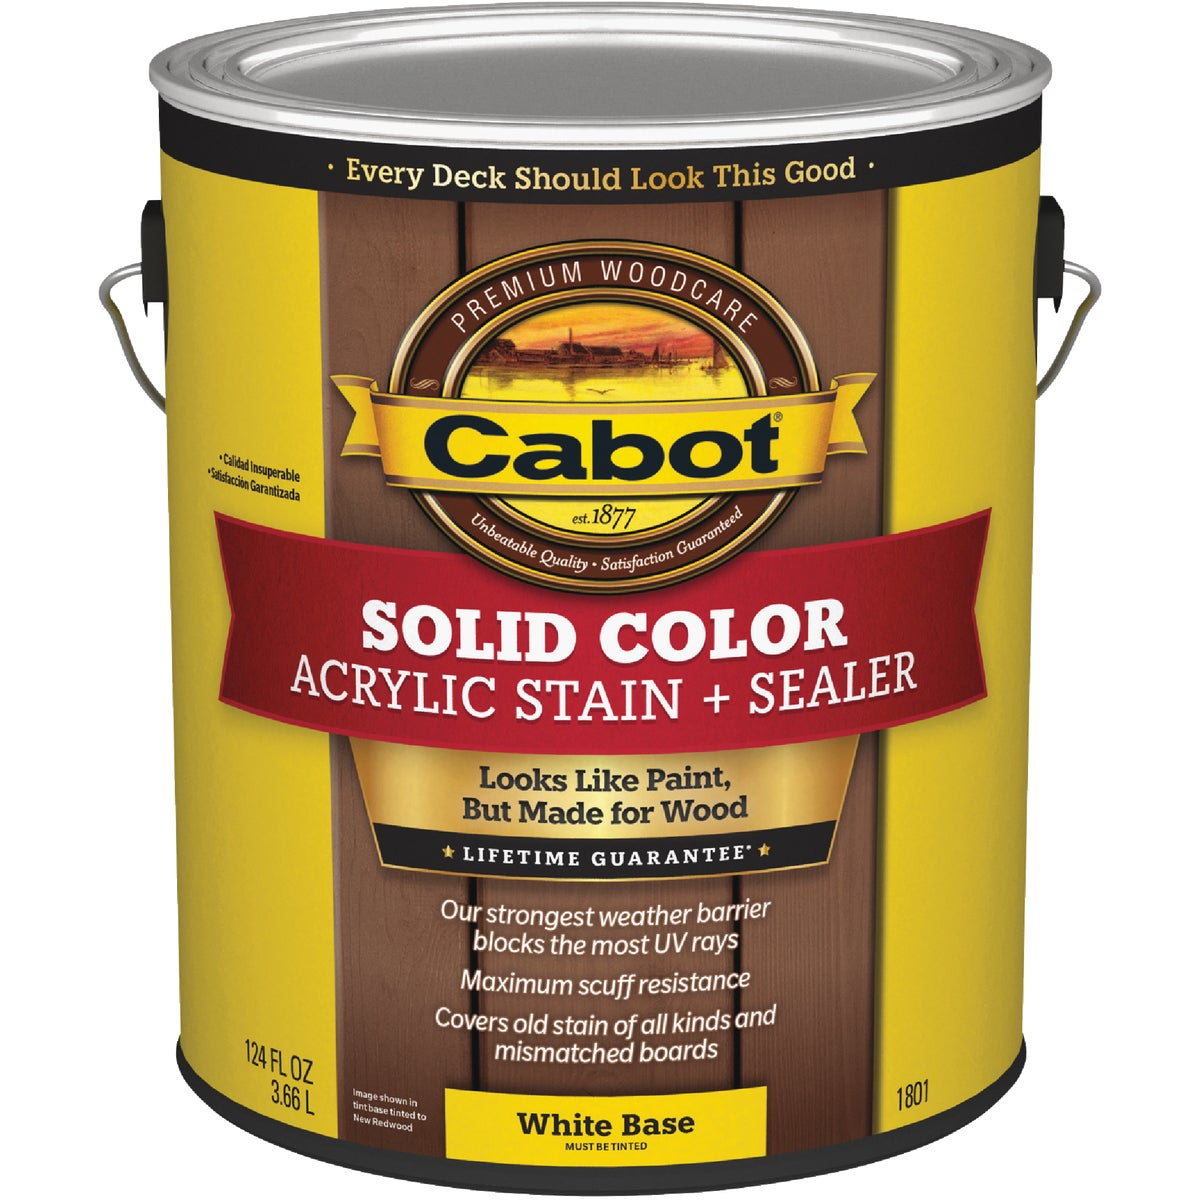 WHT BS SOLID DECK STAIN - 140.0001801.007 by Valspar Corp